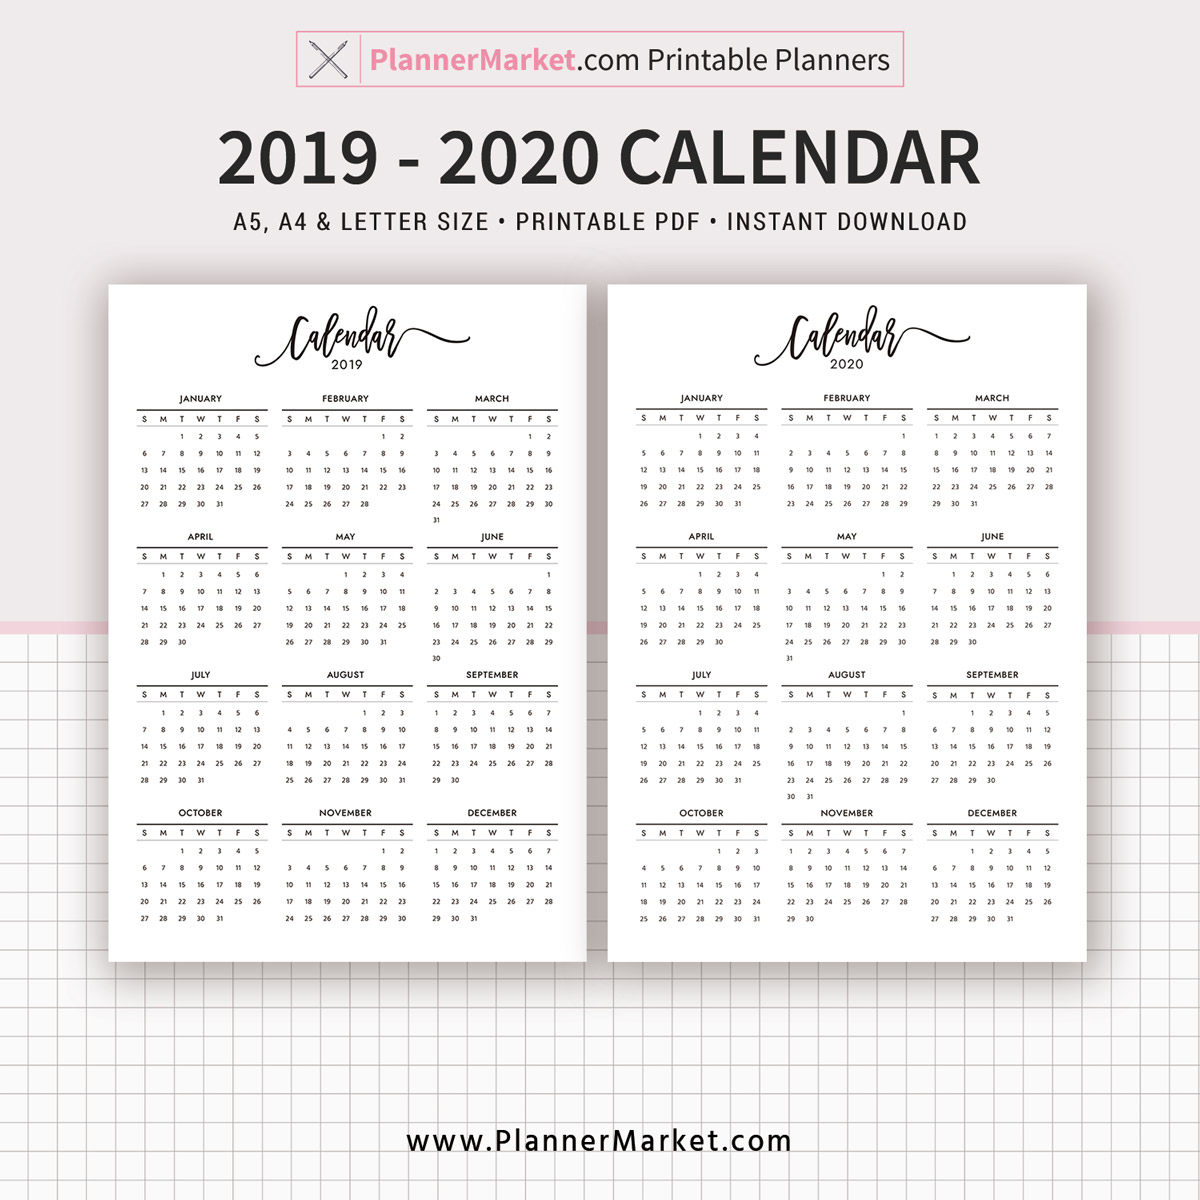 2019-2020 Yearly Calendar Printable, Filofax A5, A4, Letter Size, Planner  Refill, Planner Pages, Planner Inserts, Instant Download pertaining to Printable 8.5 X 11 2020 Calendar